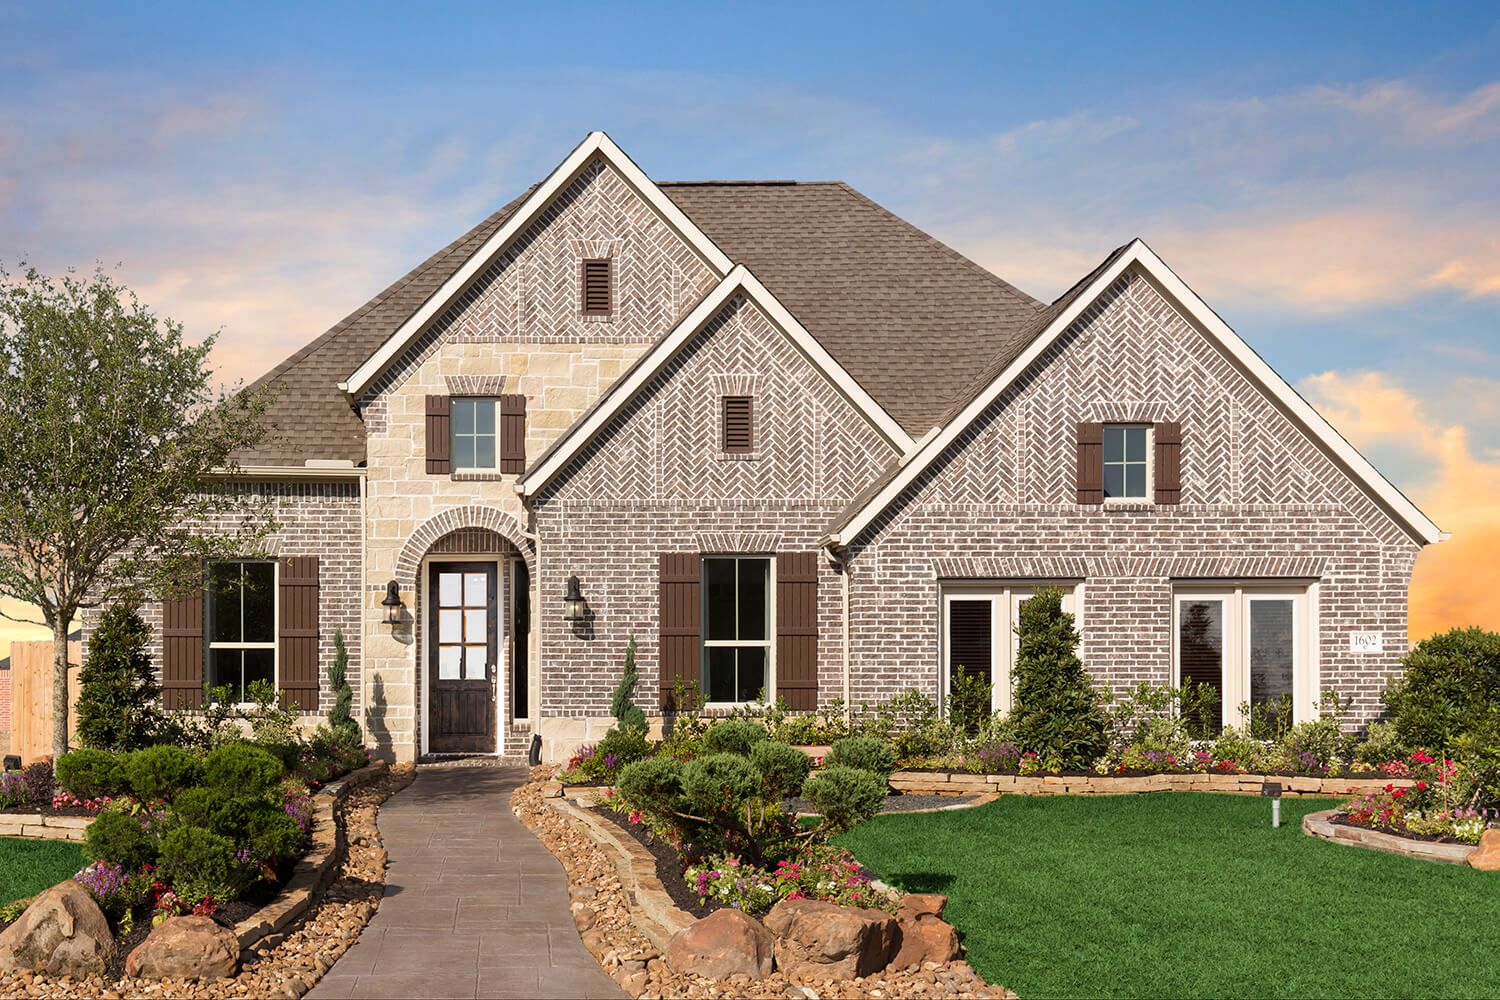 Cane Island 55ft Homes Katy, TX Coventry Homes